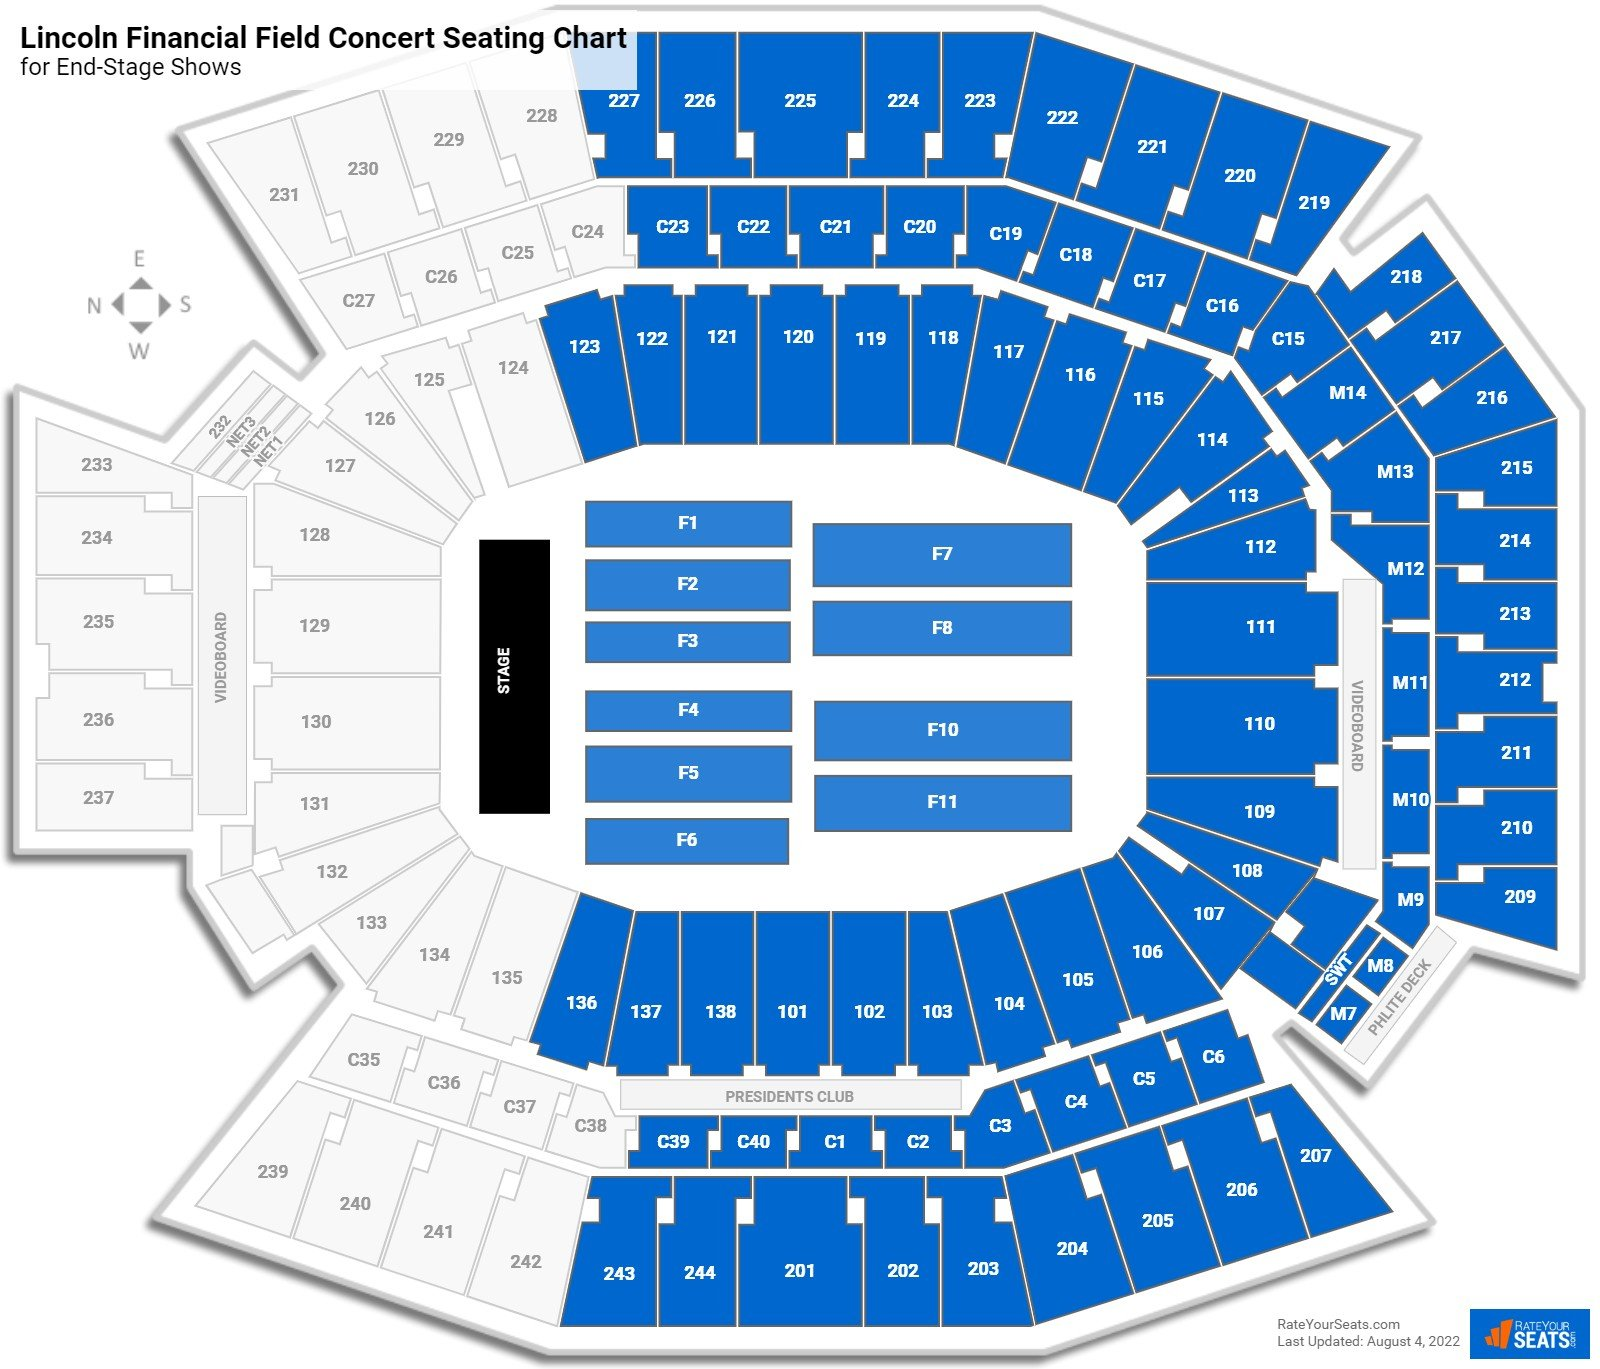 Lincoln Financial Field Seating Chart for Concerts